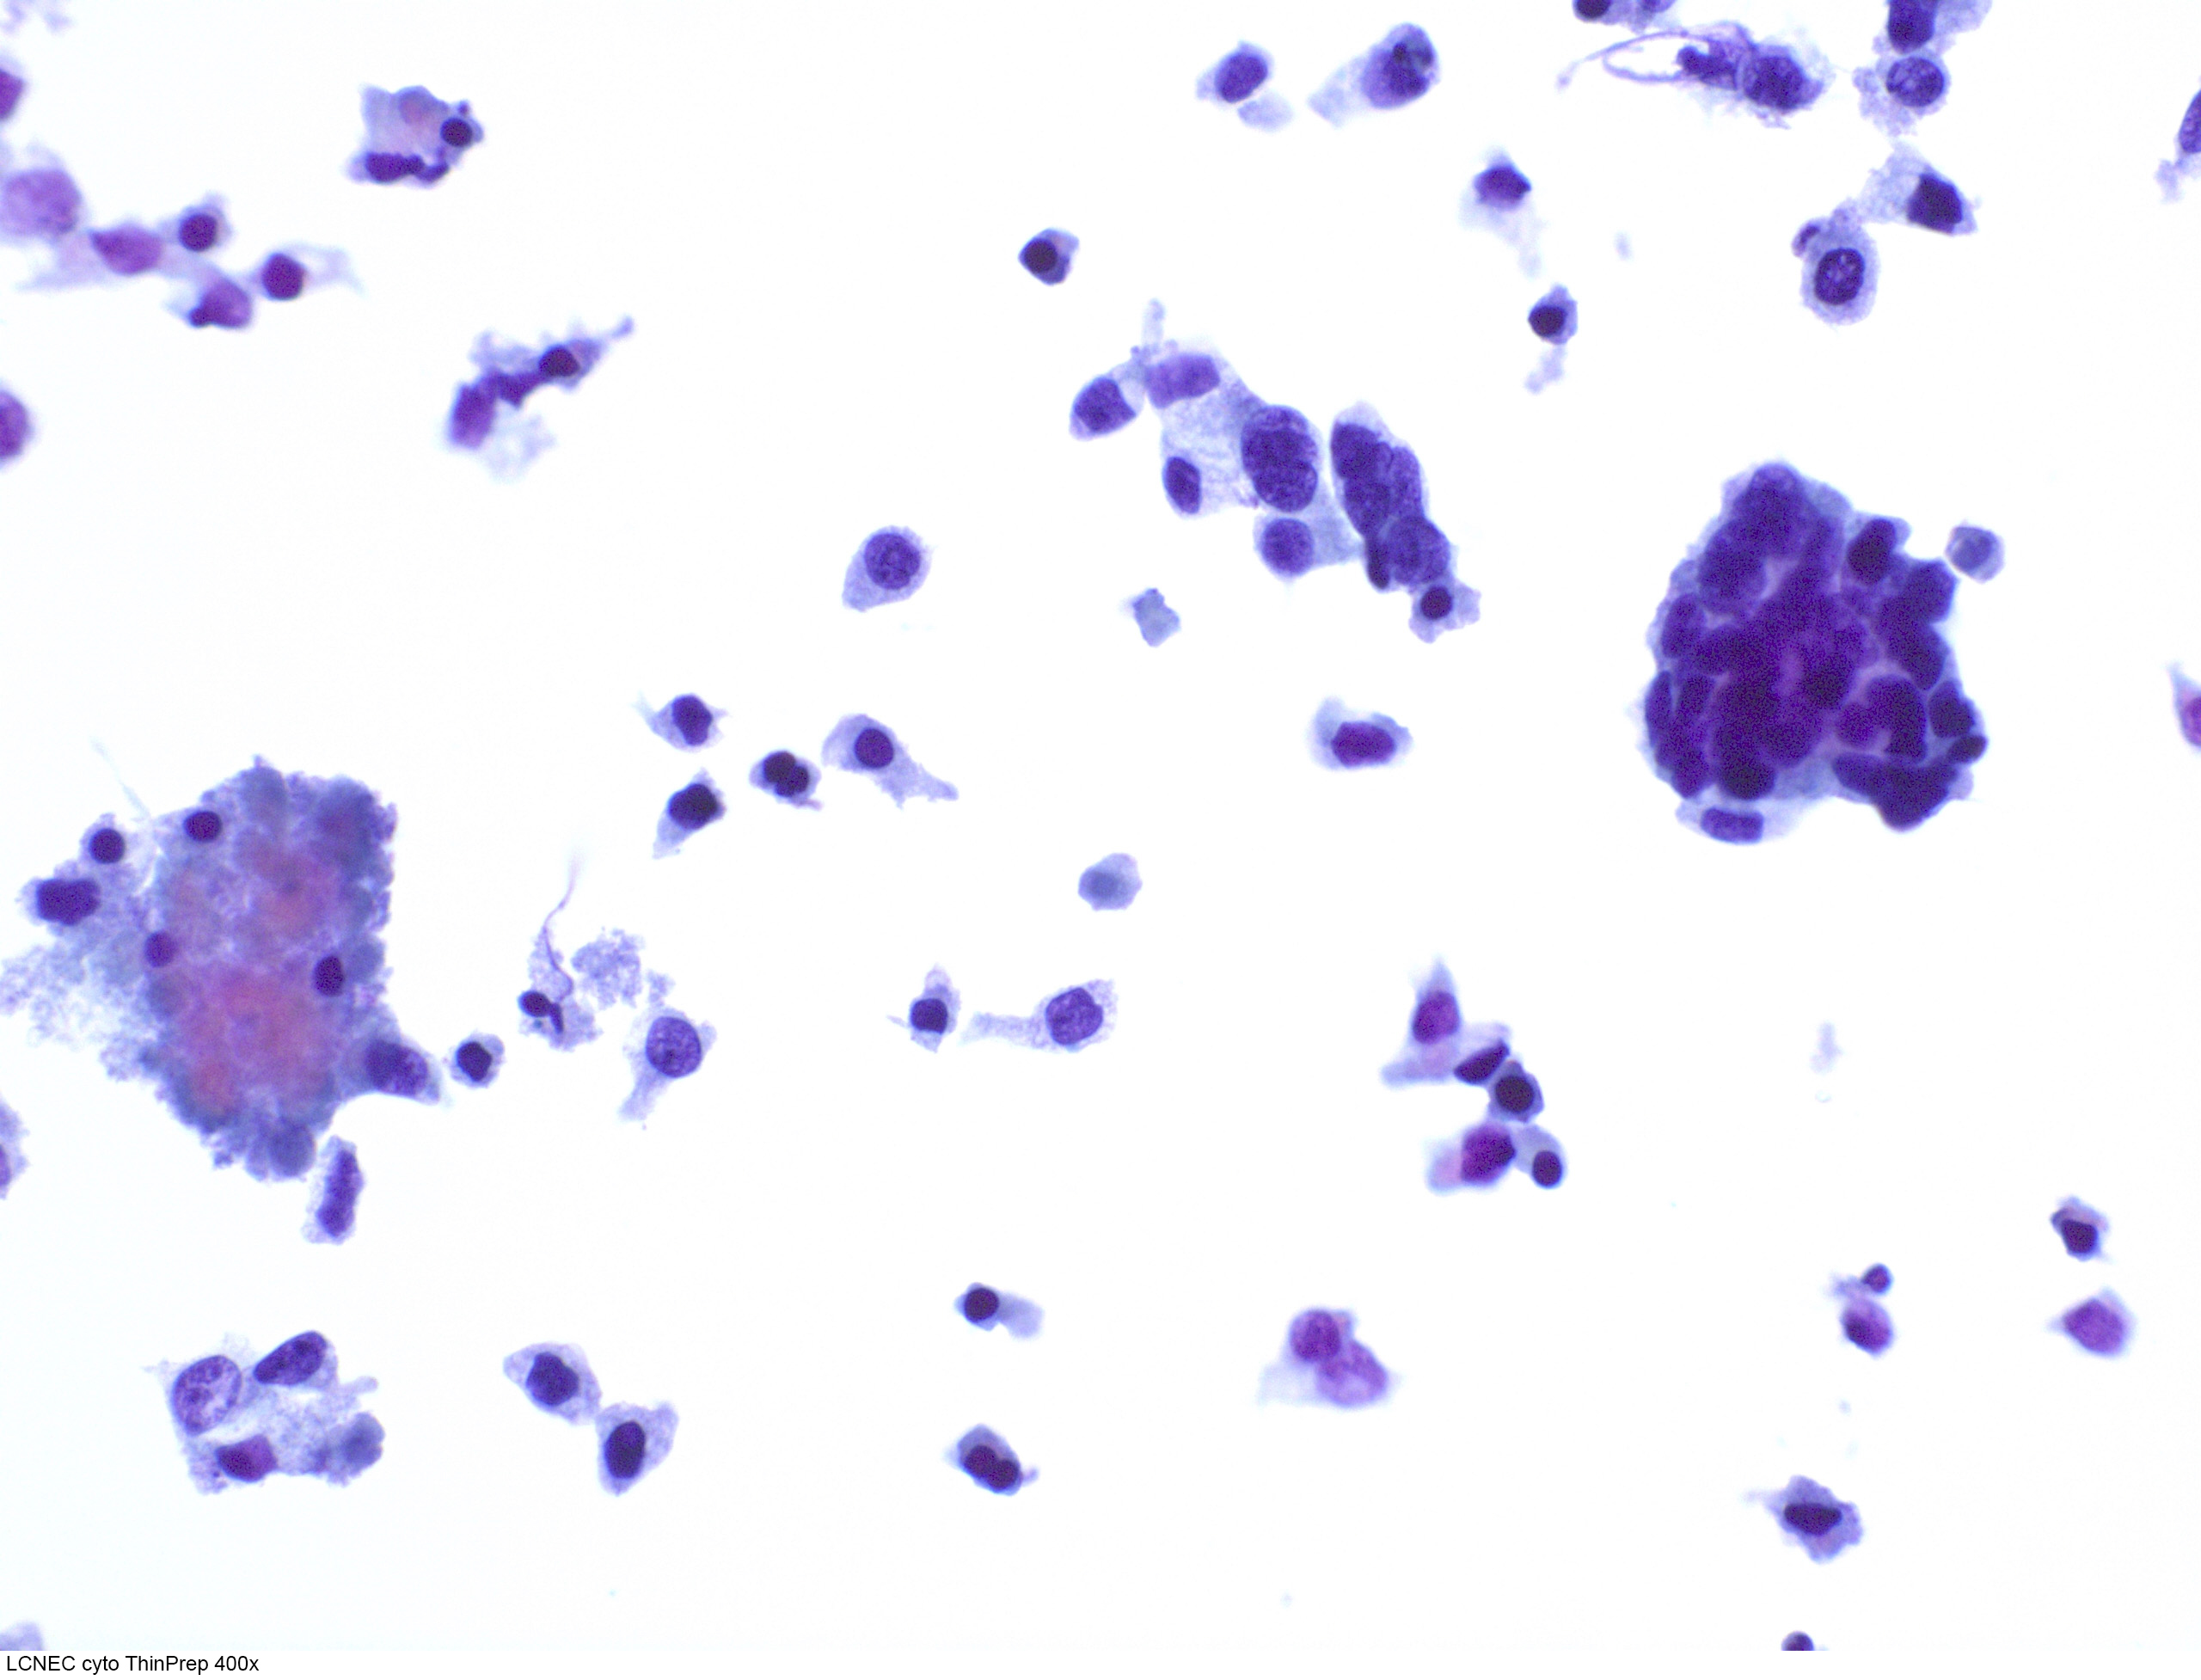 Pap stained ThinPrep